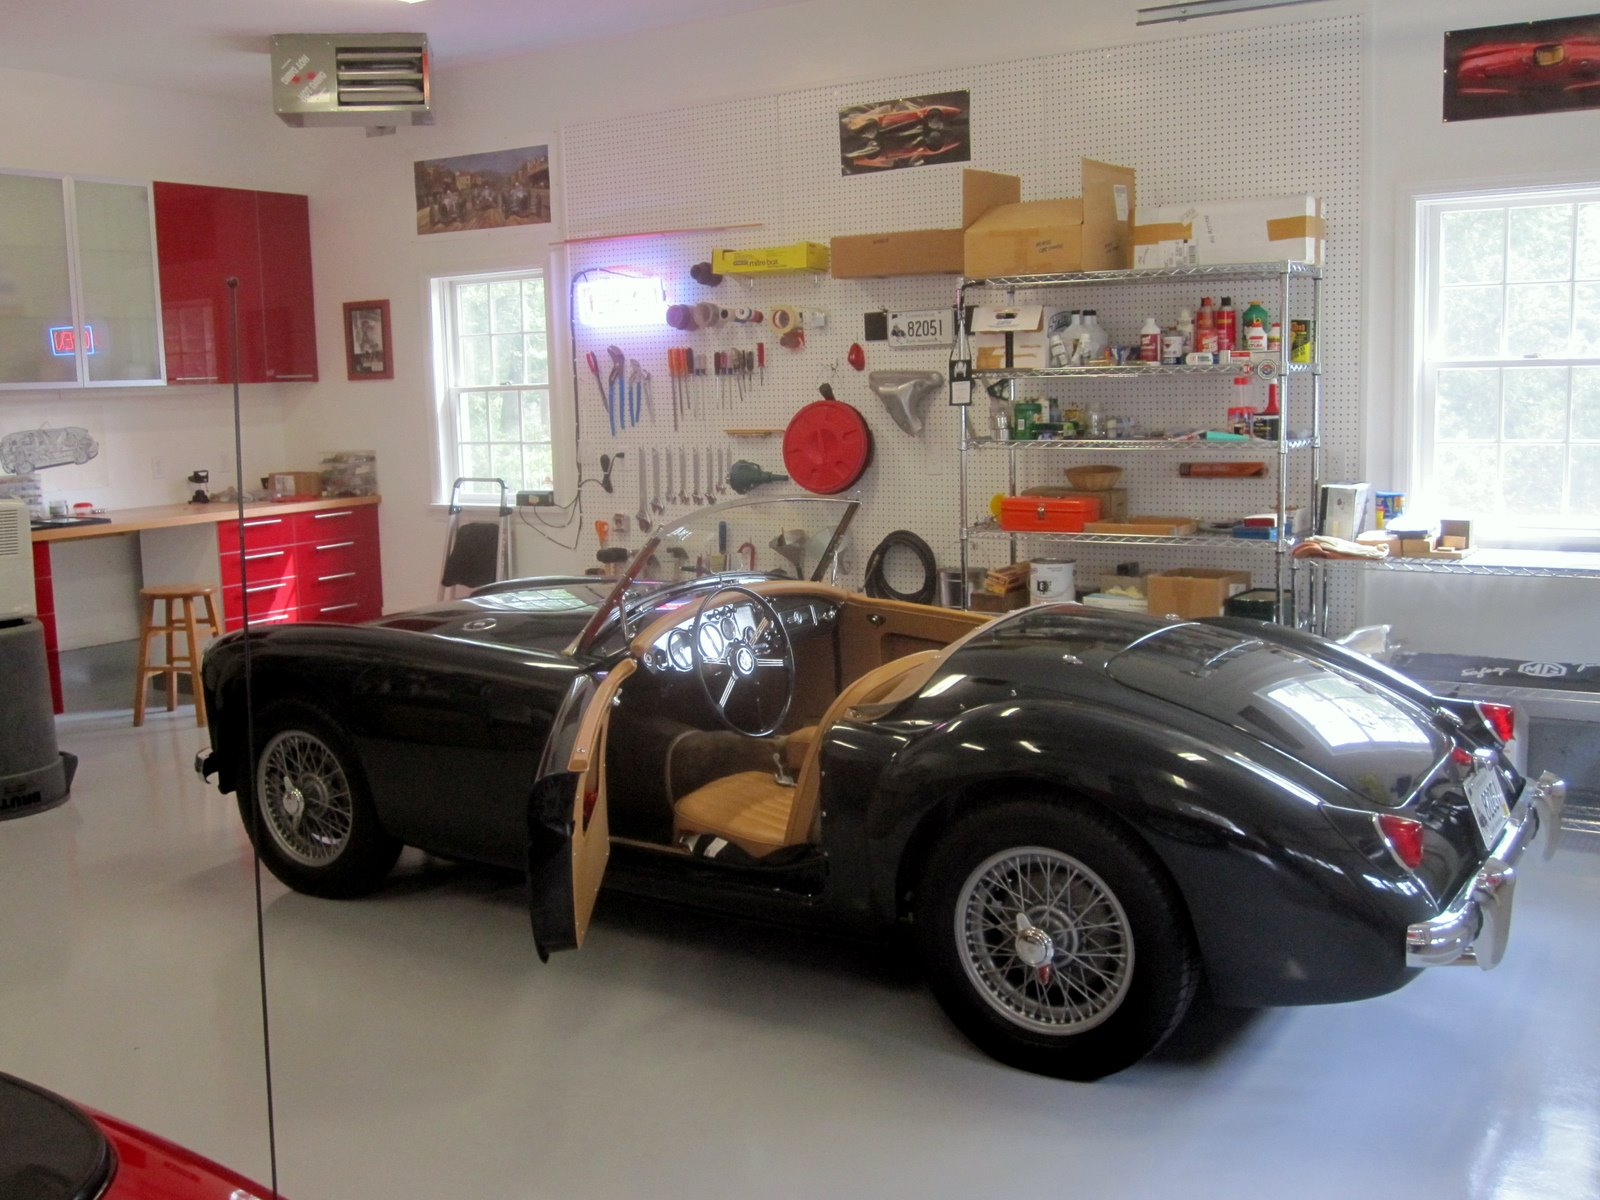 57 MGA in garage